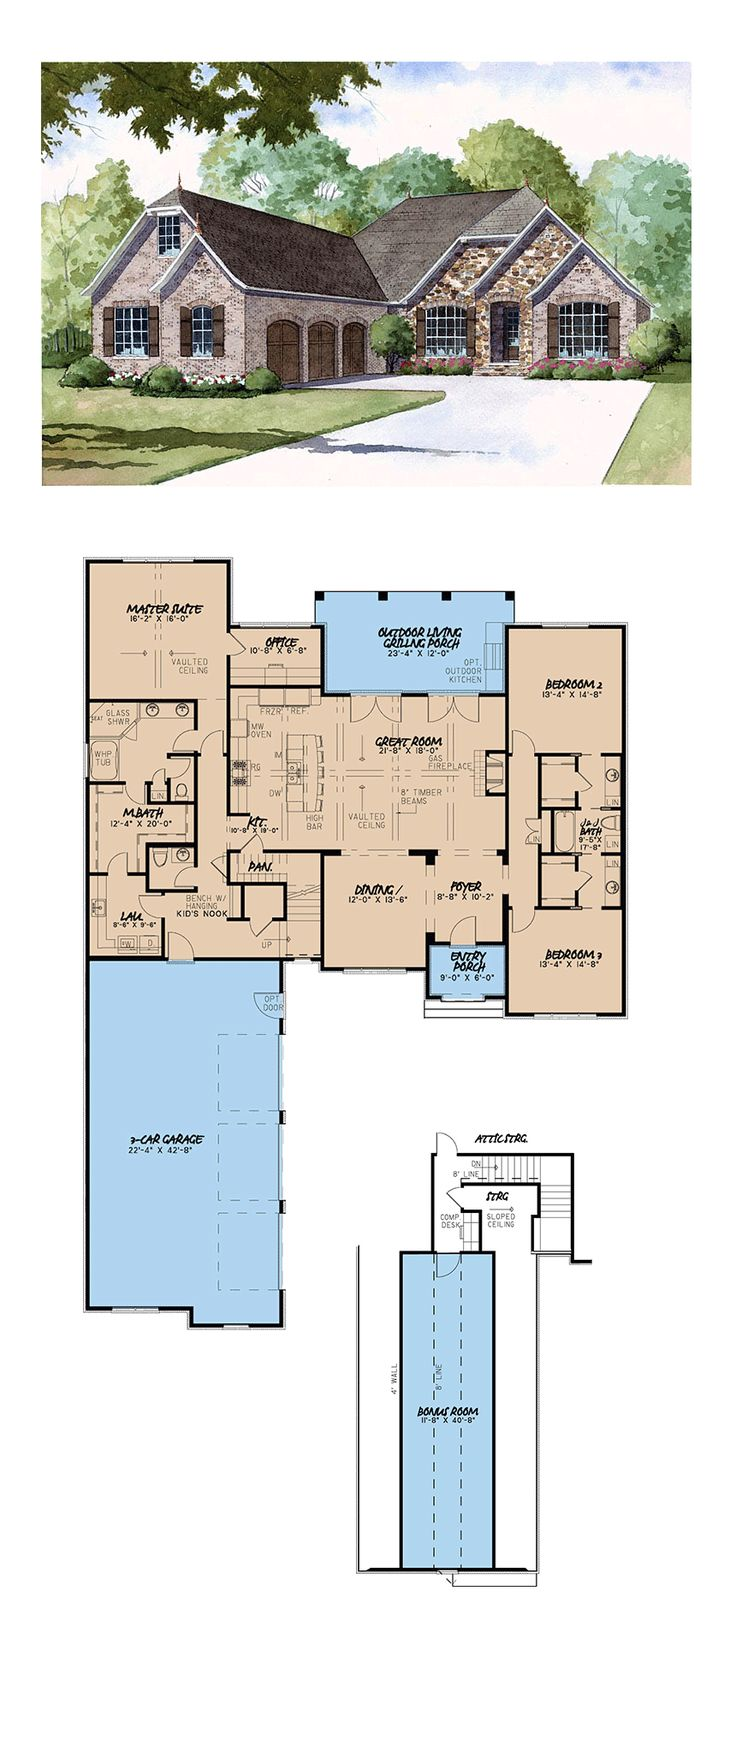 European House Plan | Total Living Area: 2532 SQ FT, 3 bedrooms and 2.5 bathrooms. #europeanhome